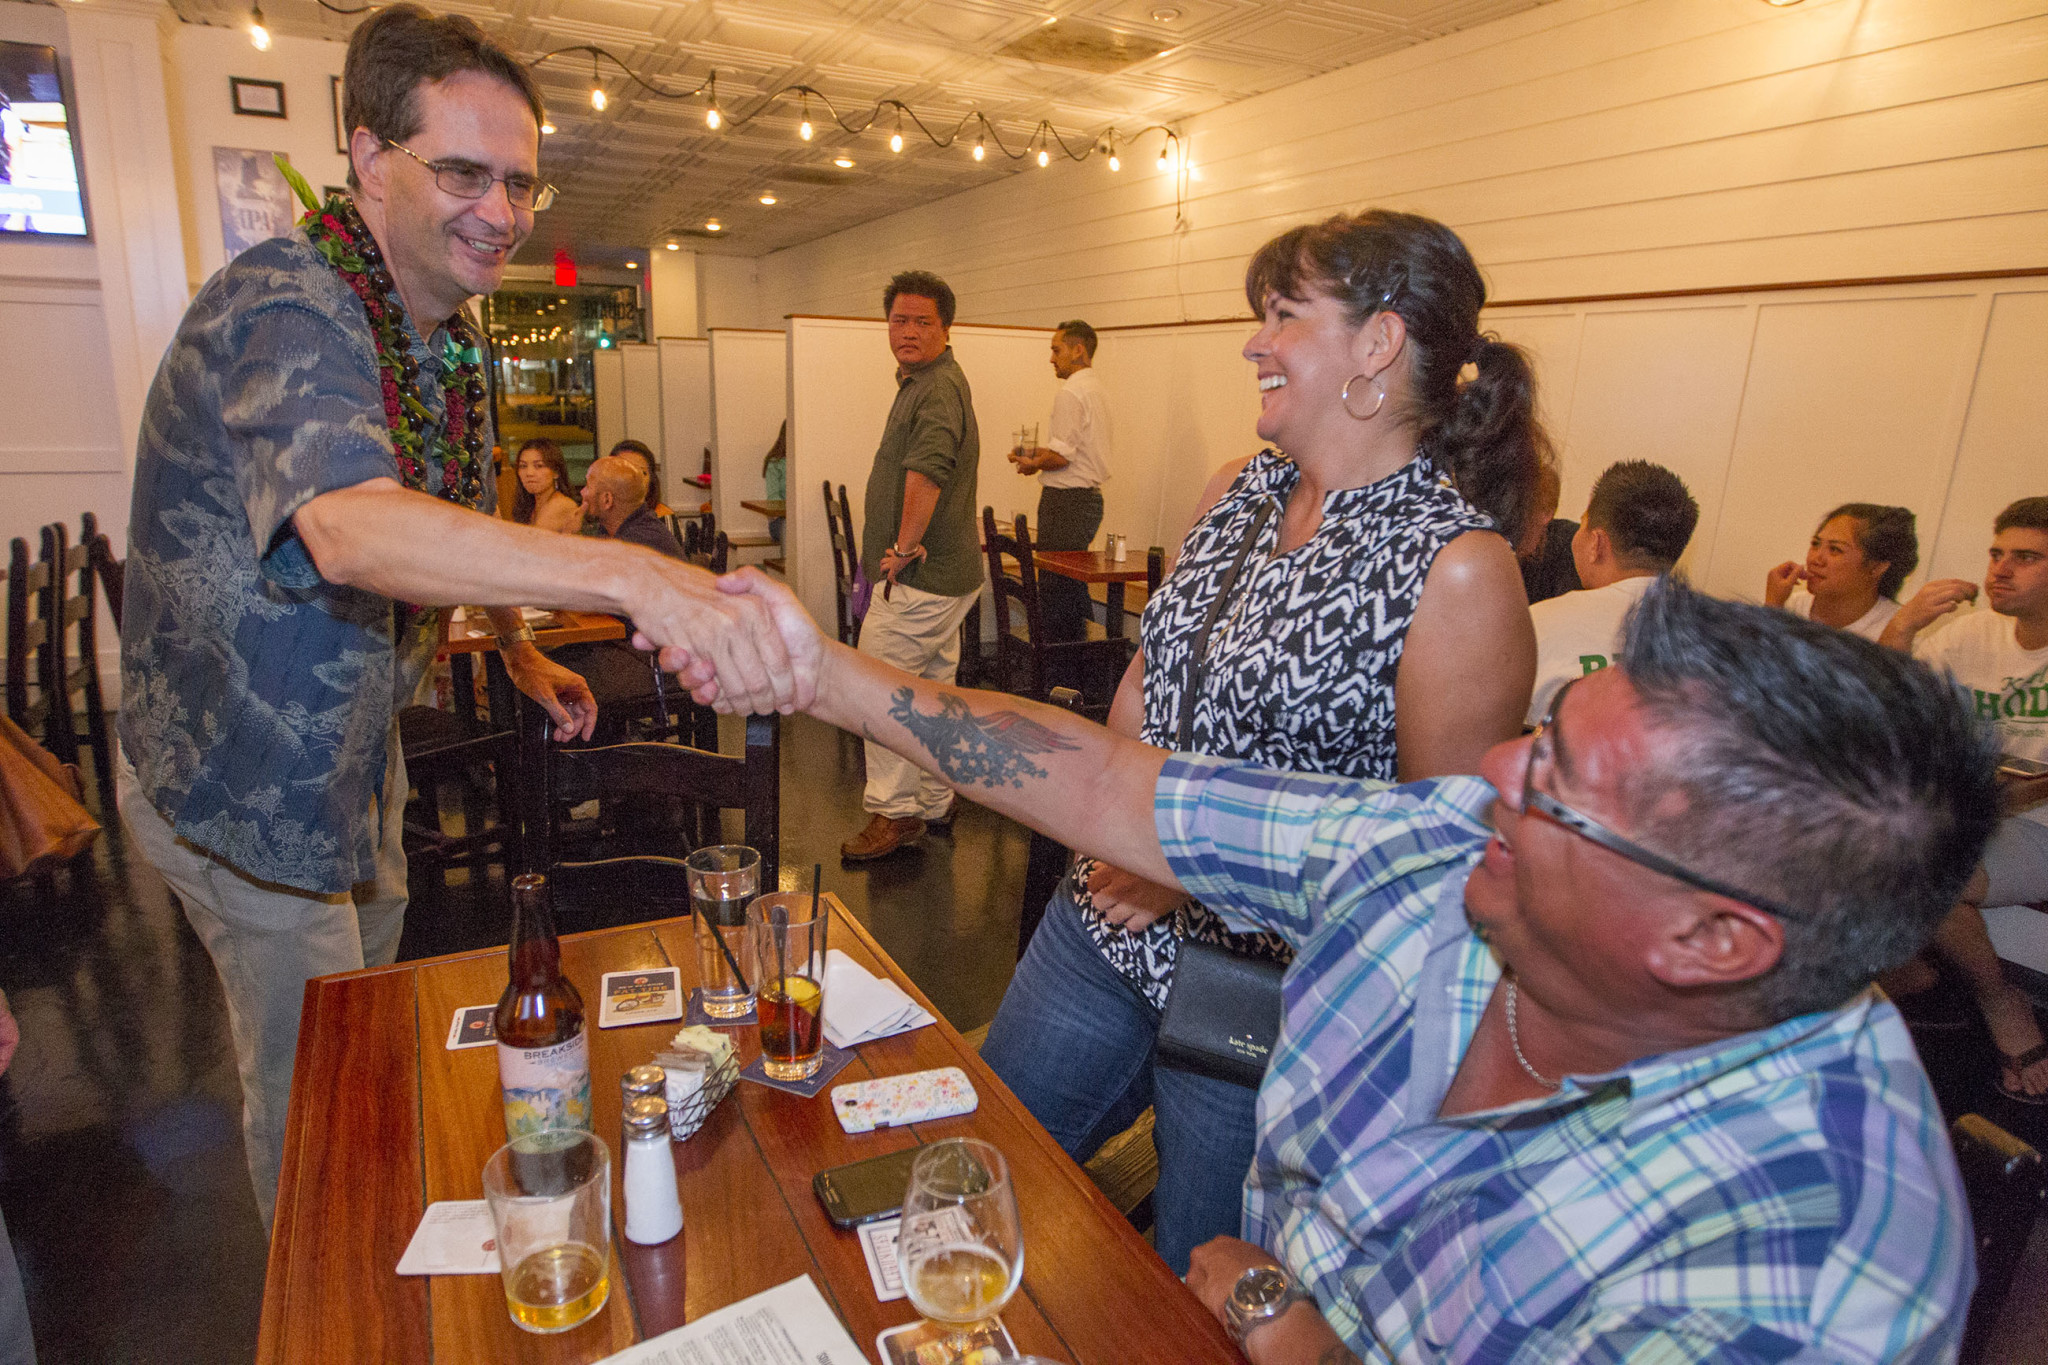 <p>Rep. Karl Rhoads, left, was looking to move from the state House to the Senate, and celebrated winning the District 13 Democratic primary with supporters at Square Barrels downtown. (Eugene Tanner/Civil Beat)</p>